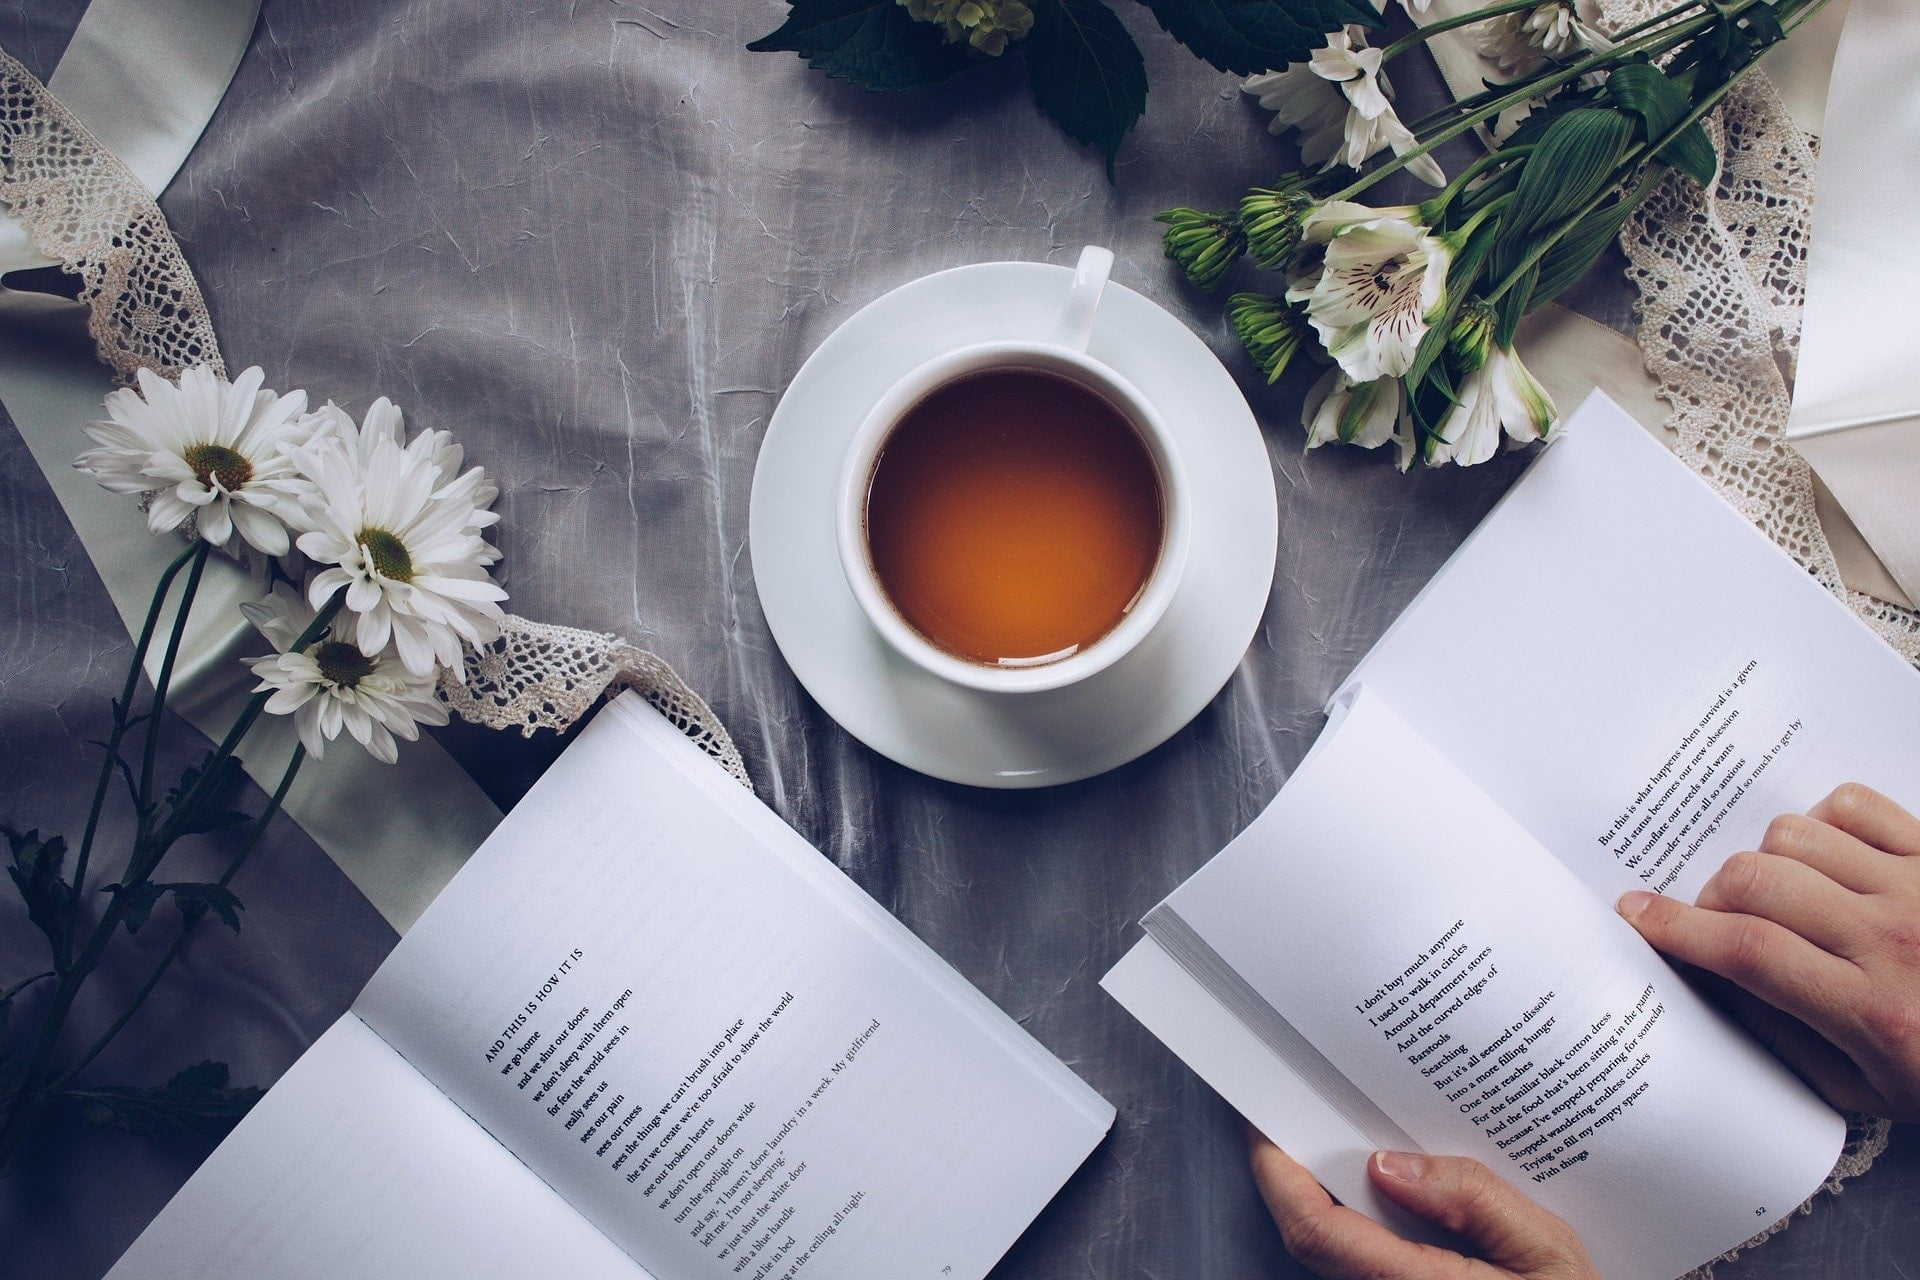 open poetry book on a table with a cup of tea and flowers